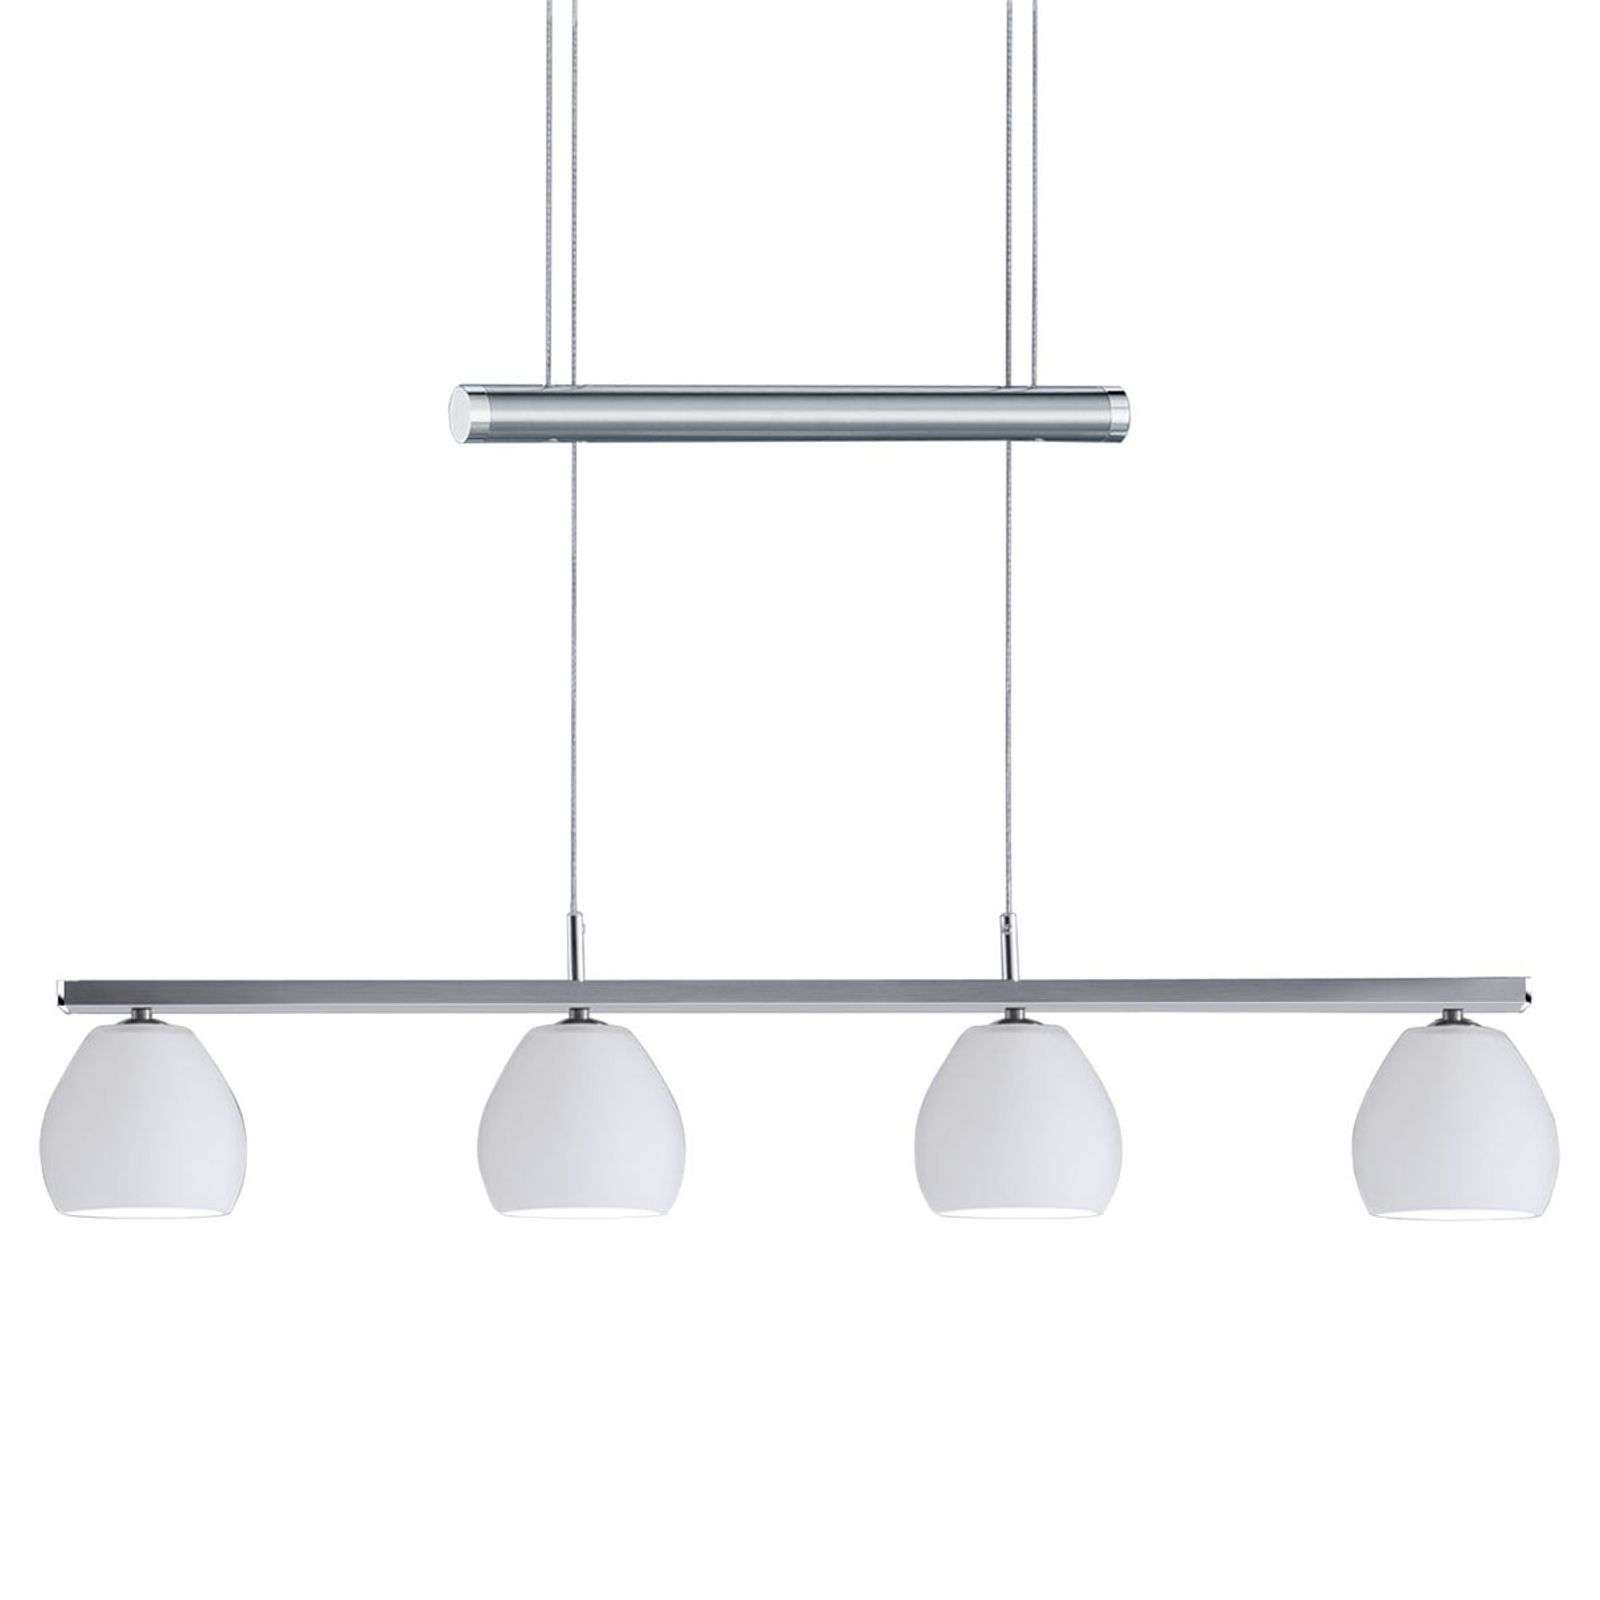 Suspension LED Caliente, 4 lampes, réglable